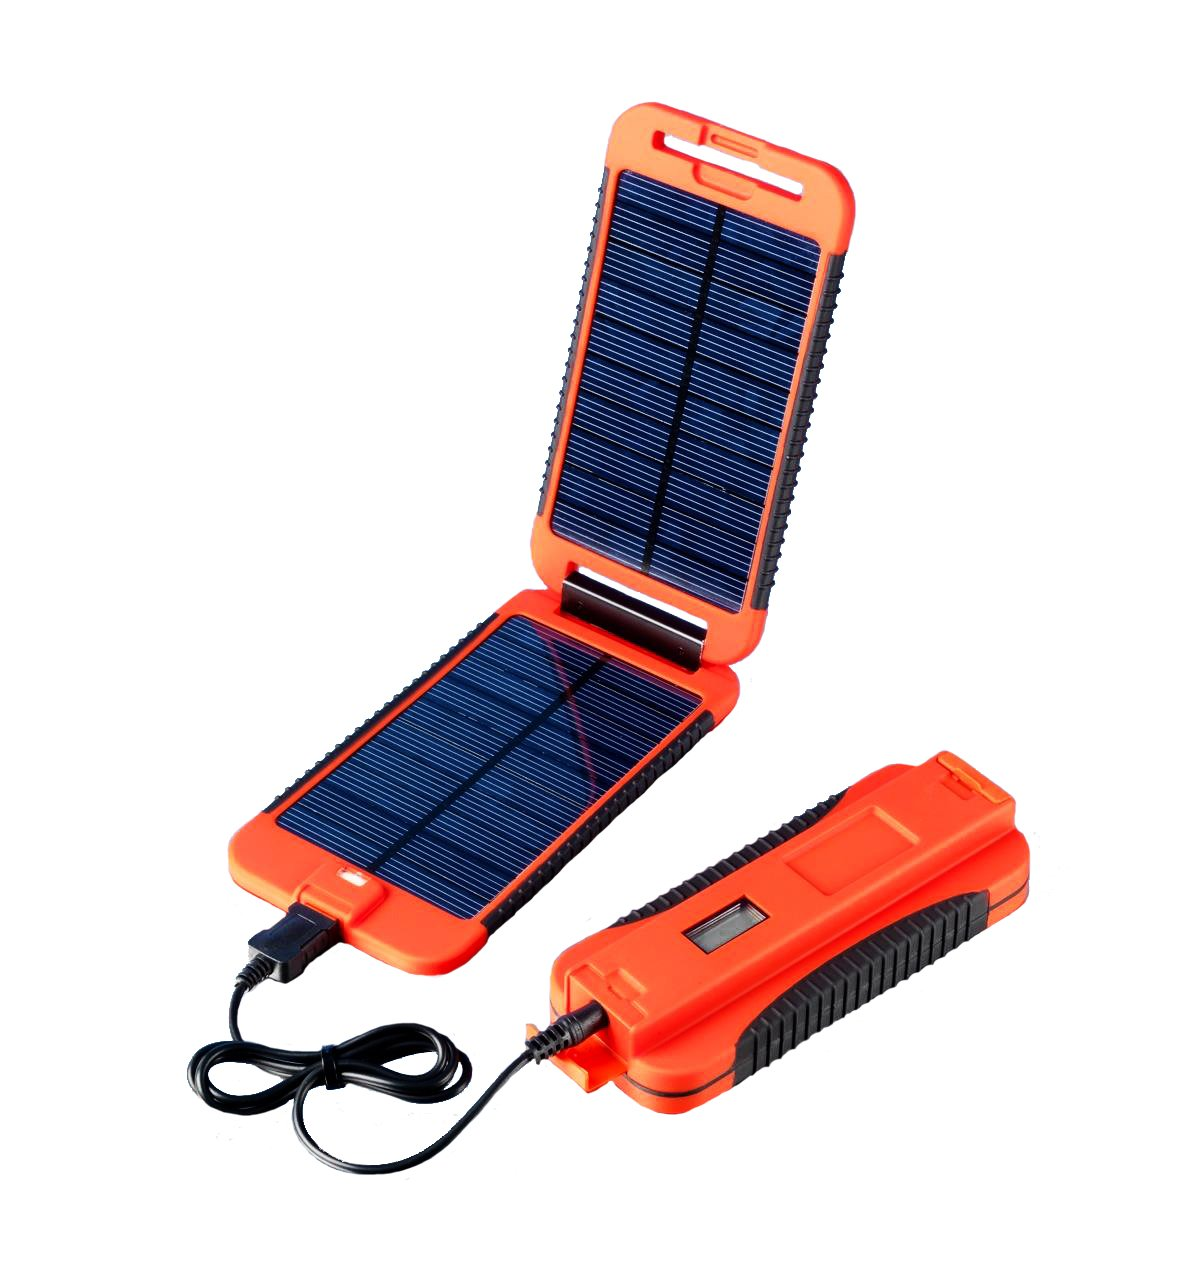 Exo-Science Powermonkey Extreme 5V and 12V Solar Portable Charger, Red